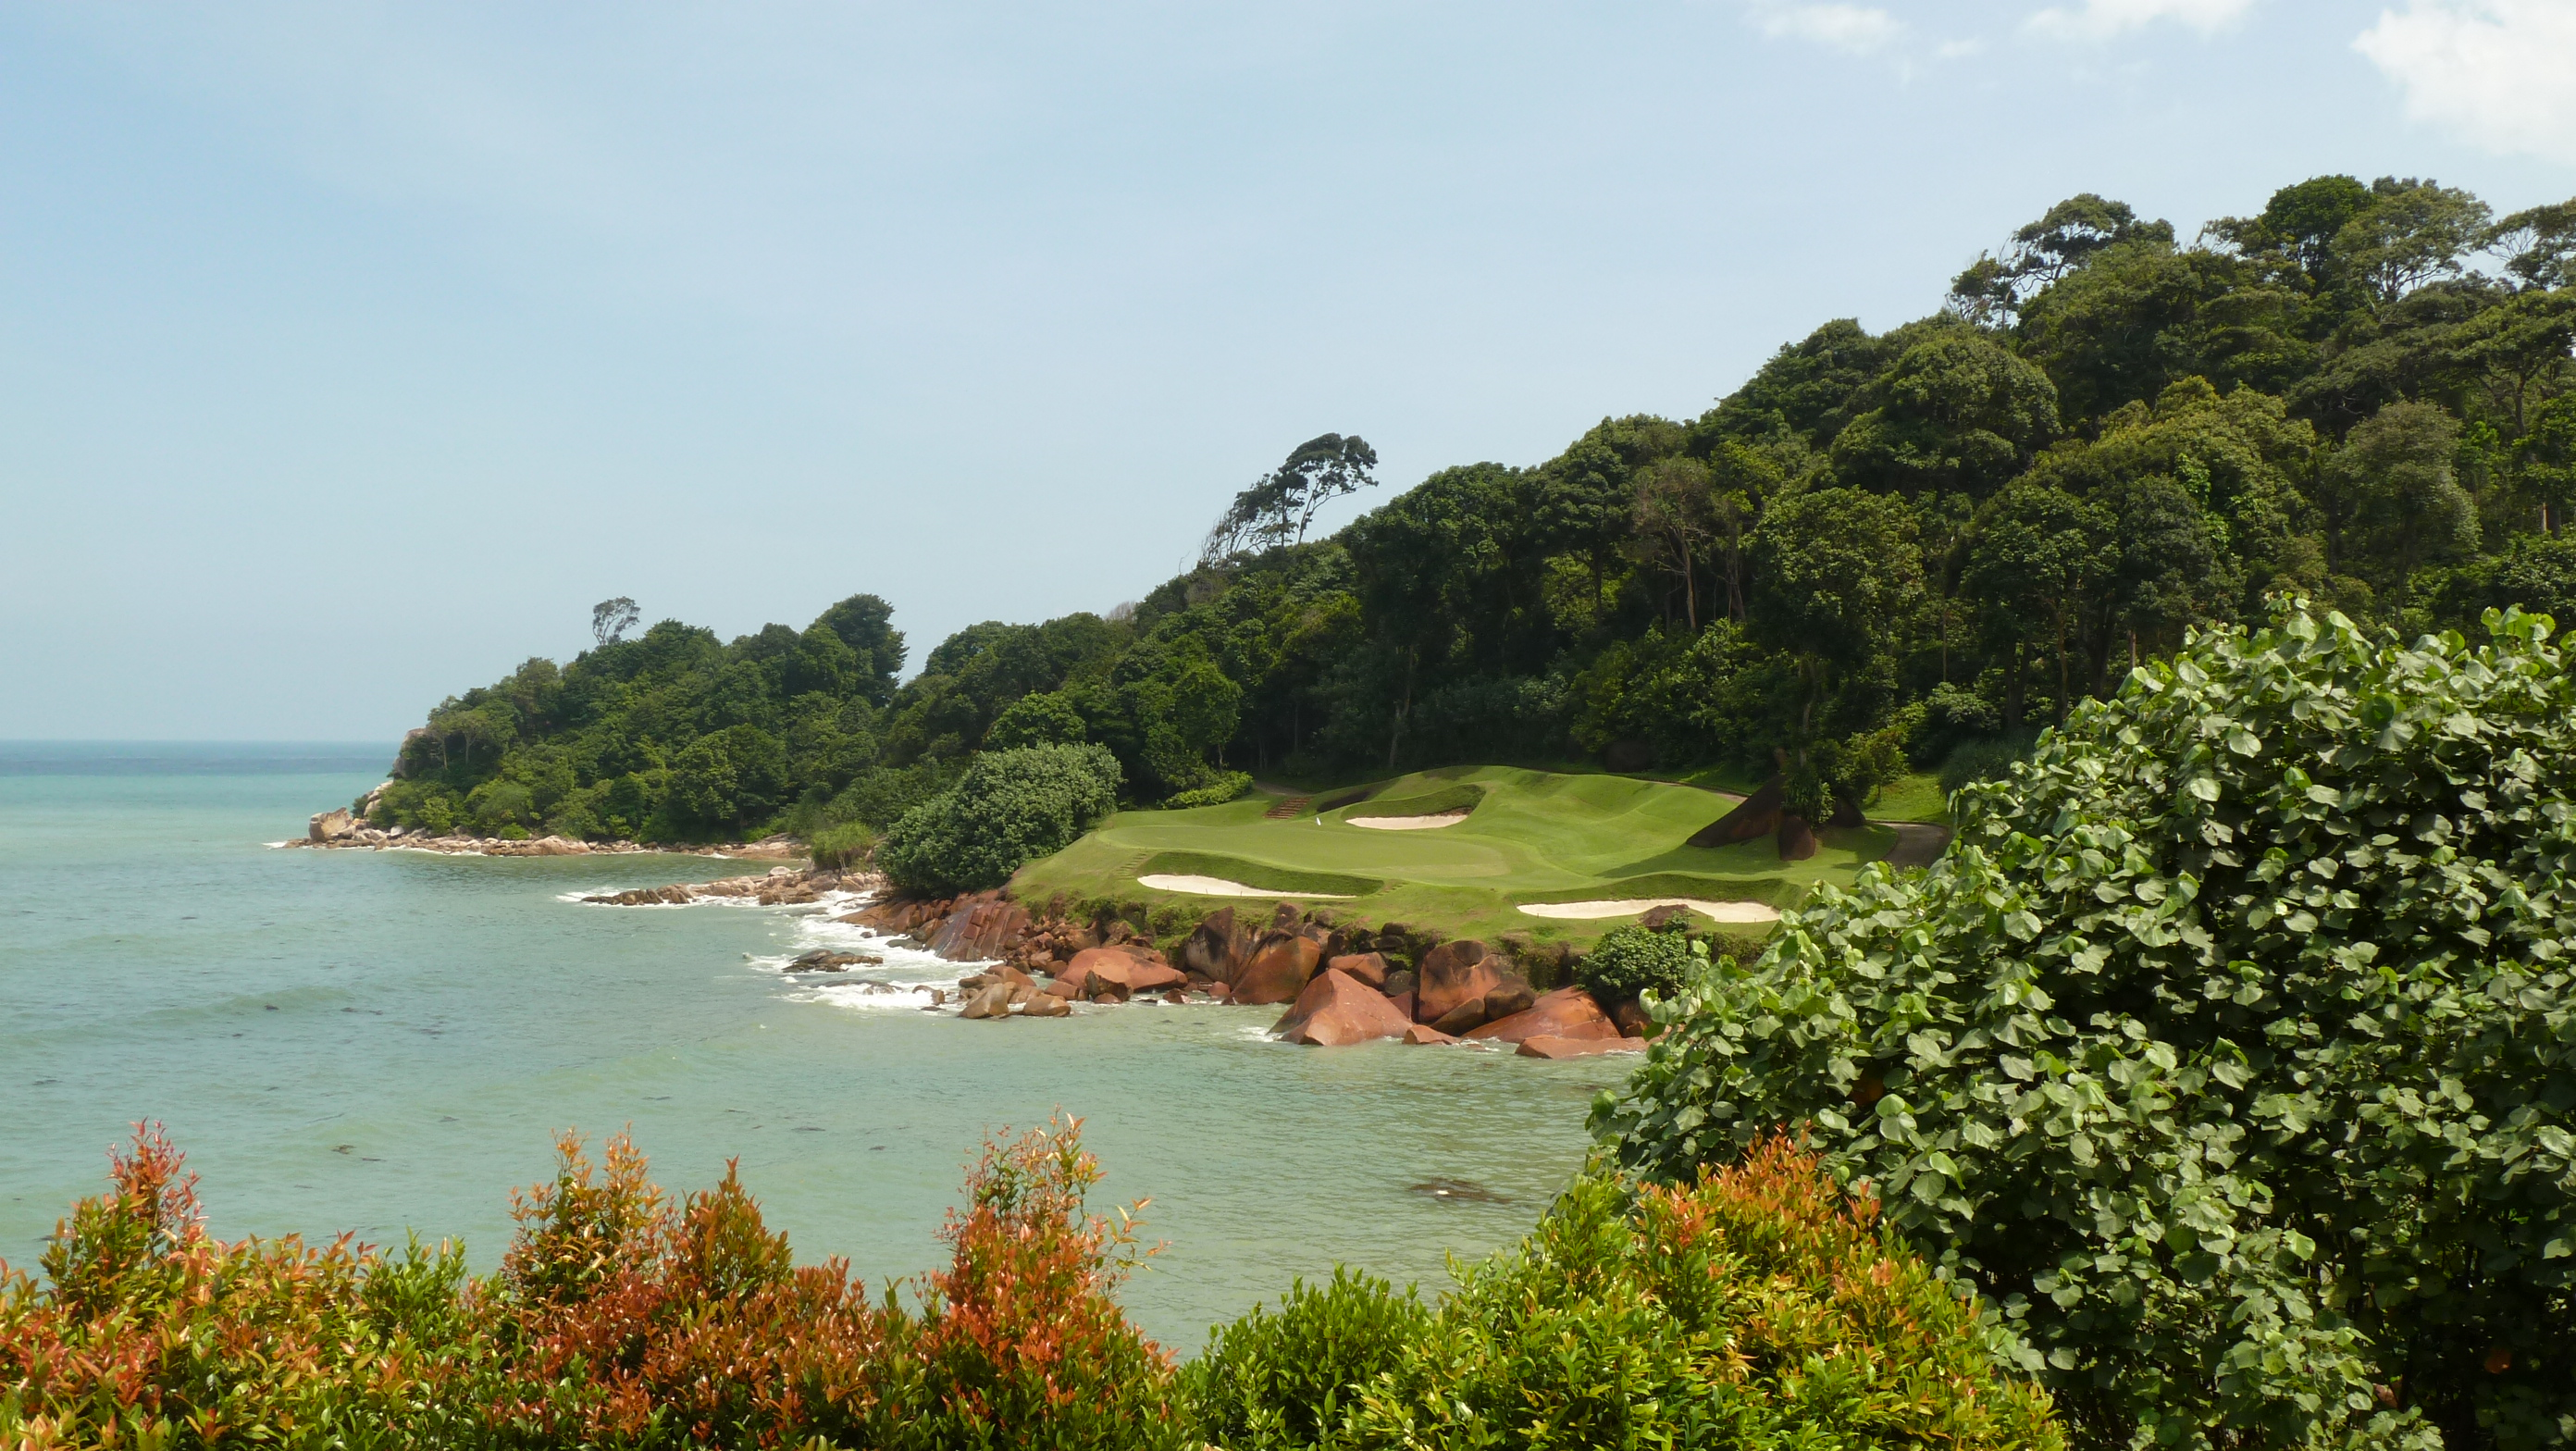 The 9th Hole at Ria Bintan Golf Club Ocean Course